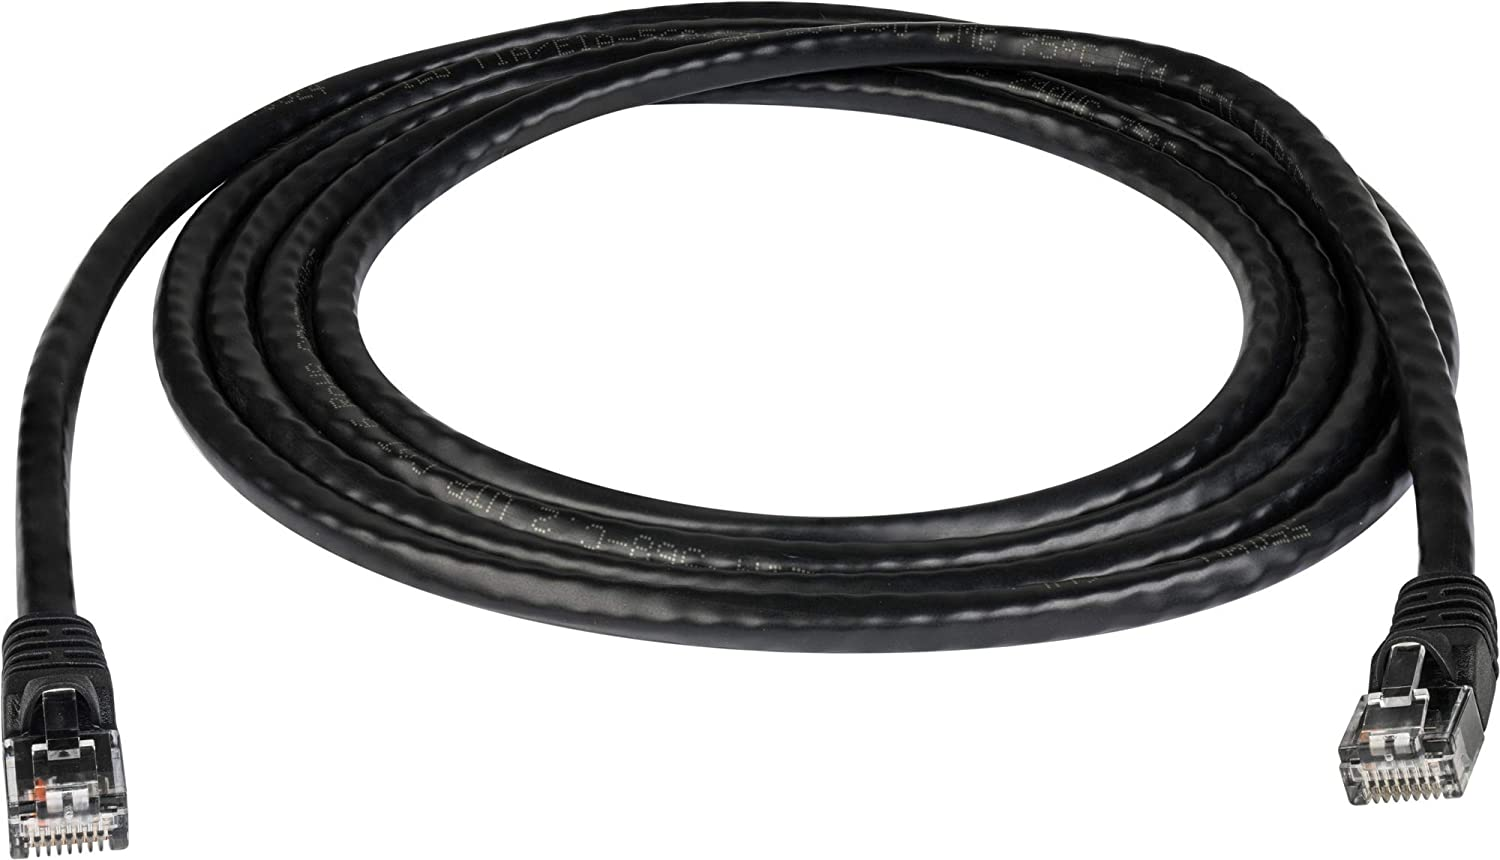 Molded Utp Cat6 Tampa Mall Cable 24Awg Foot Sale Special Price 7 50U Black